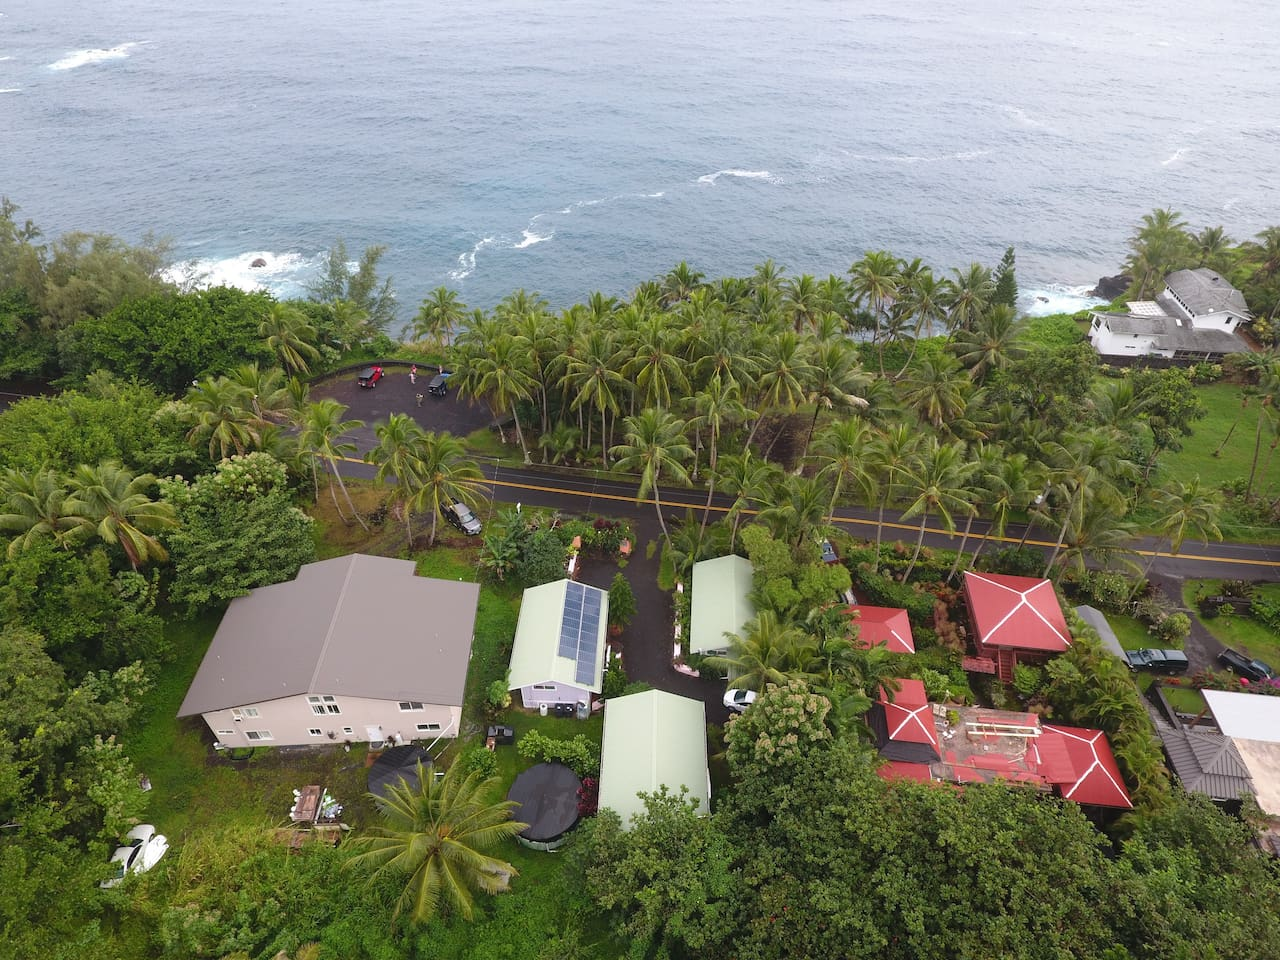 Aerial view of our 3 cottages: 1) Whale House (full kitchen) 2) Dolphin Cottage (food prep only) 3) Oceanfront Cottage (food prep only)